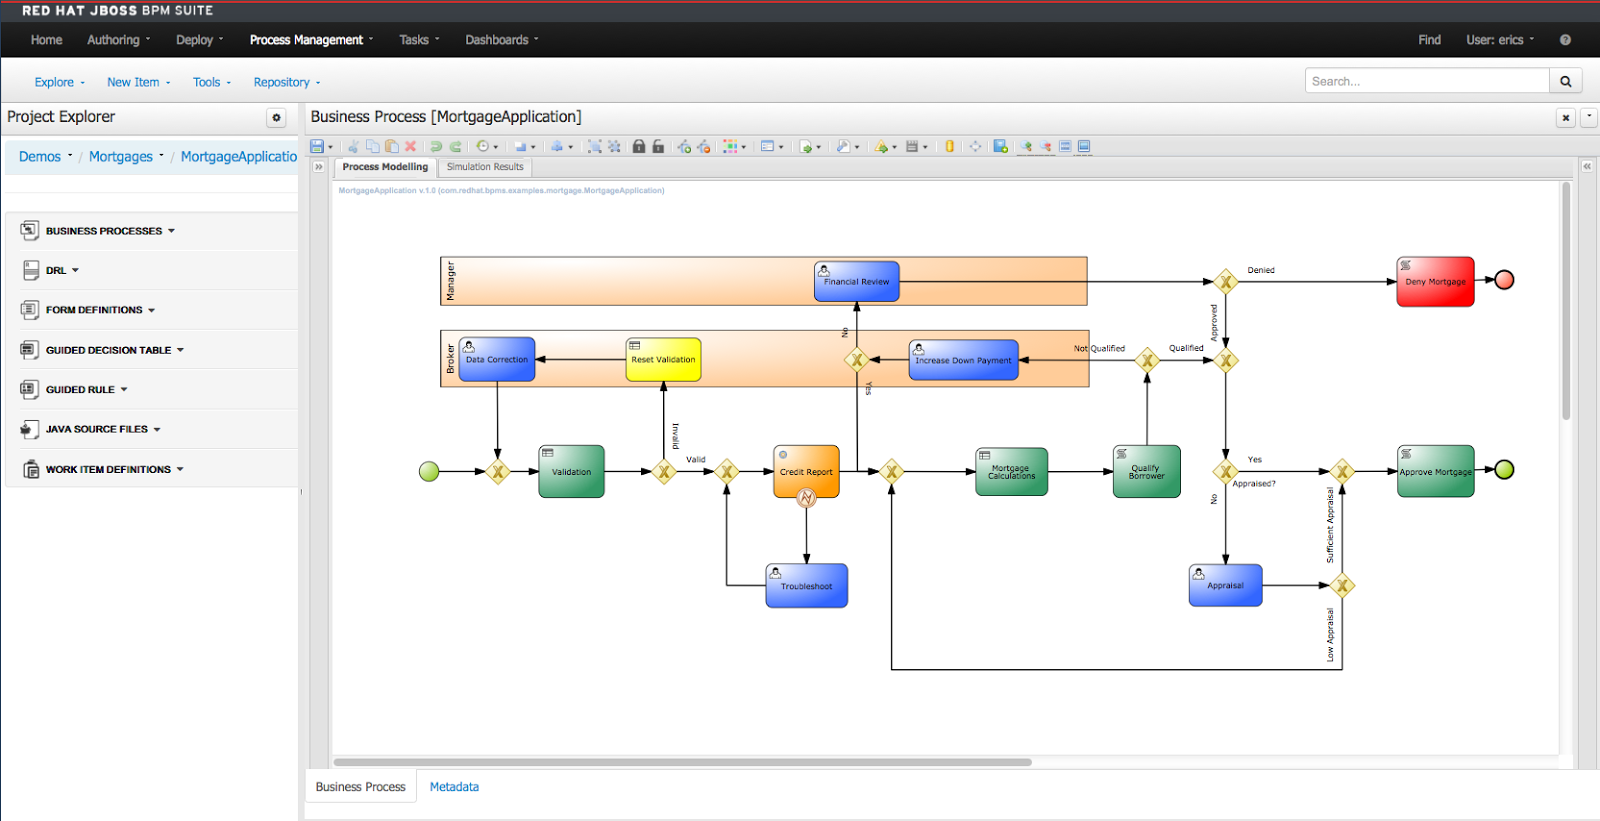 JBoss Fuse with BPM: 5 Use Cases You Should Know